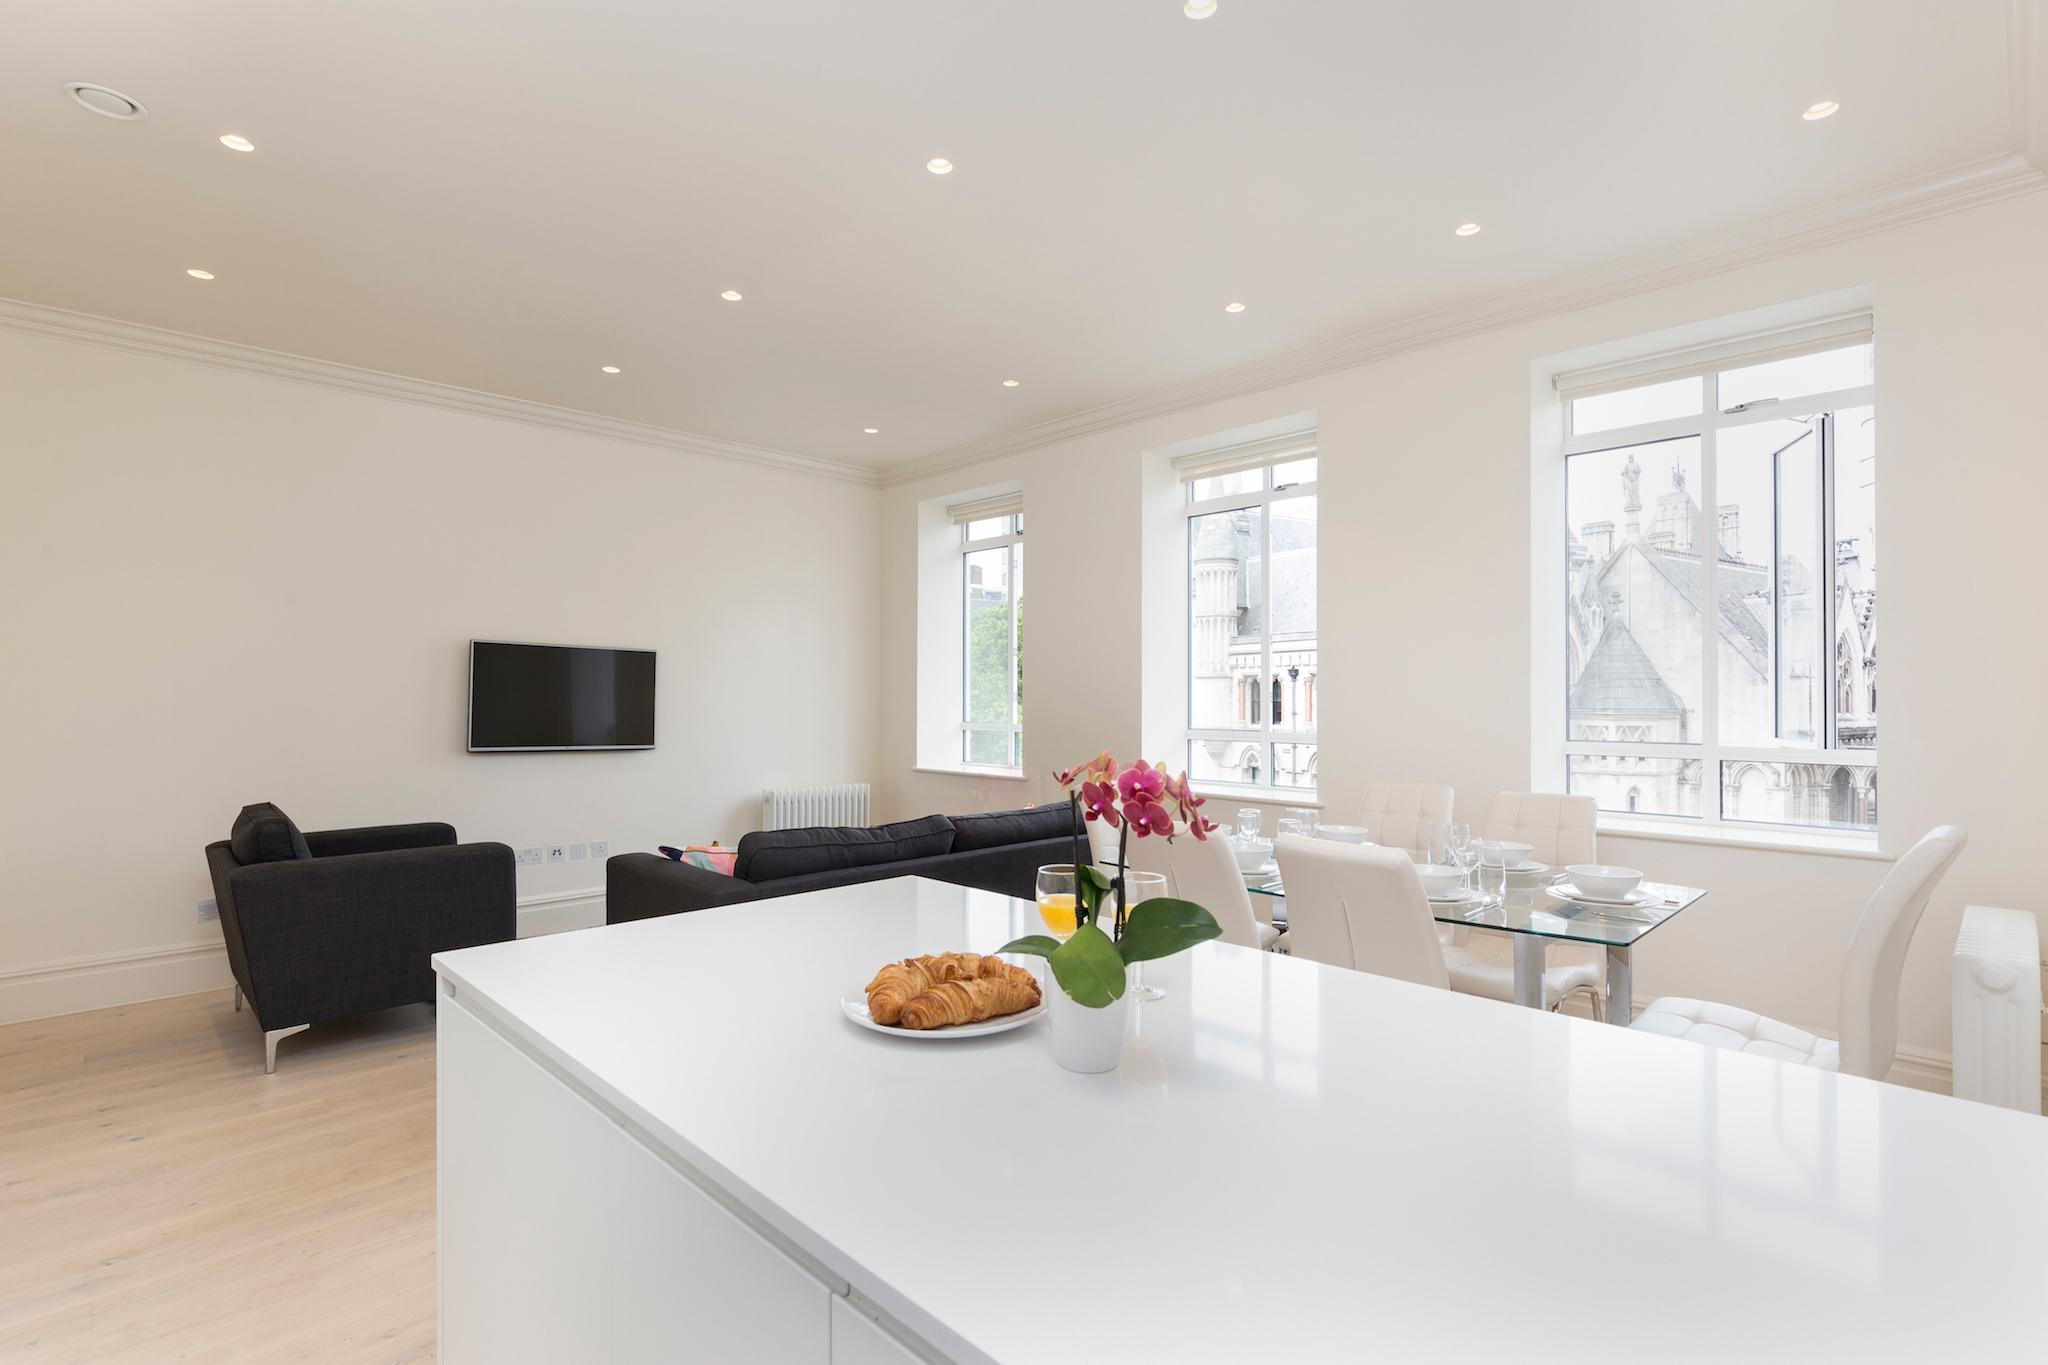 SUPER CENTRAL 3BR FLAT- AMAZING VIEWS OF LONDON